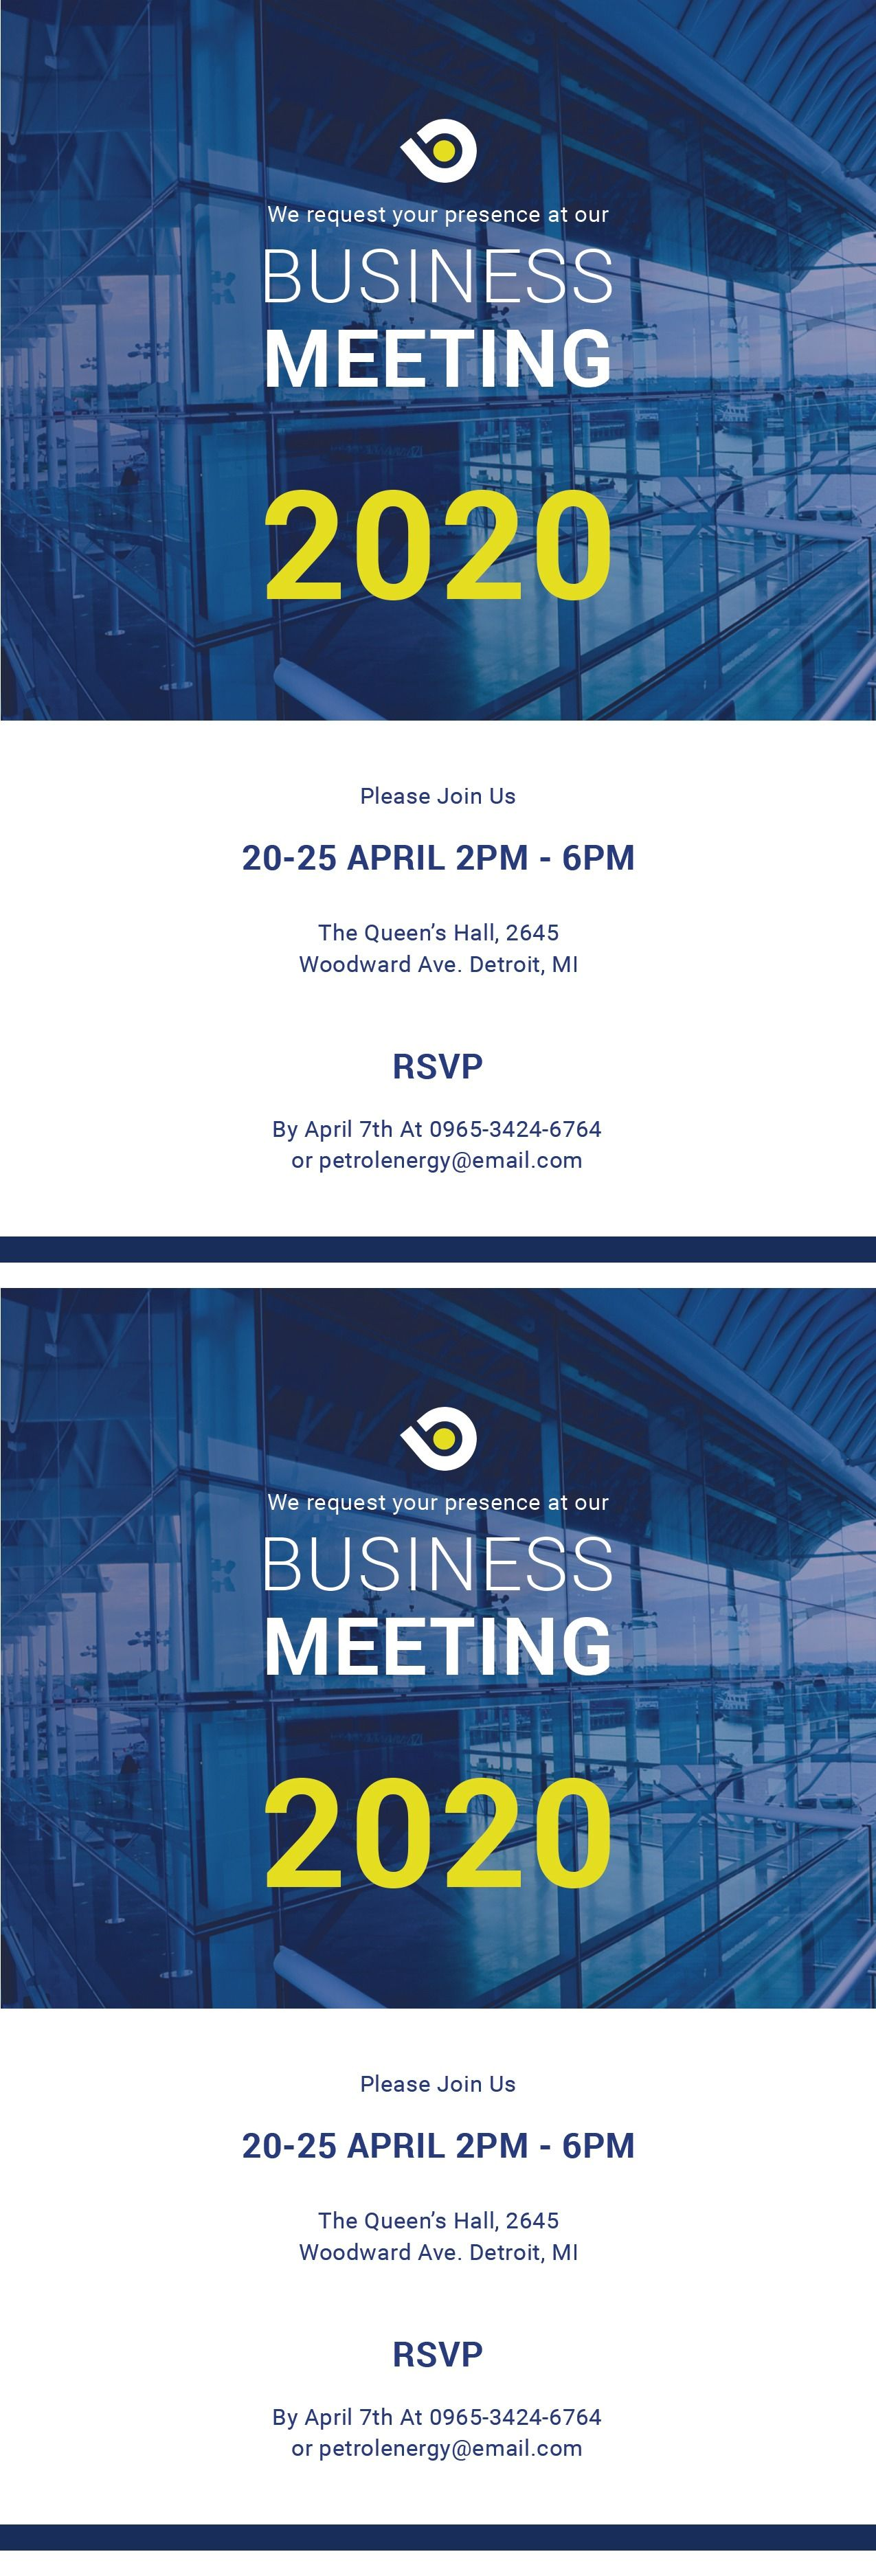 Free Business Meeting Invitation Anyvision Business Invitation